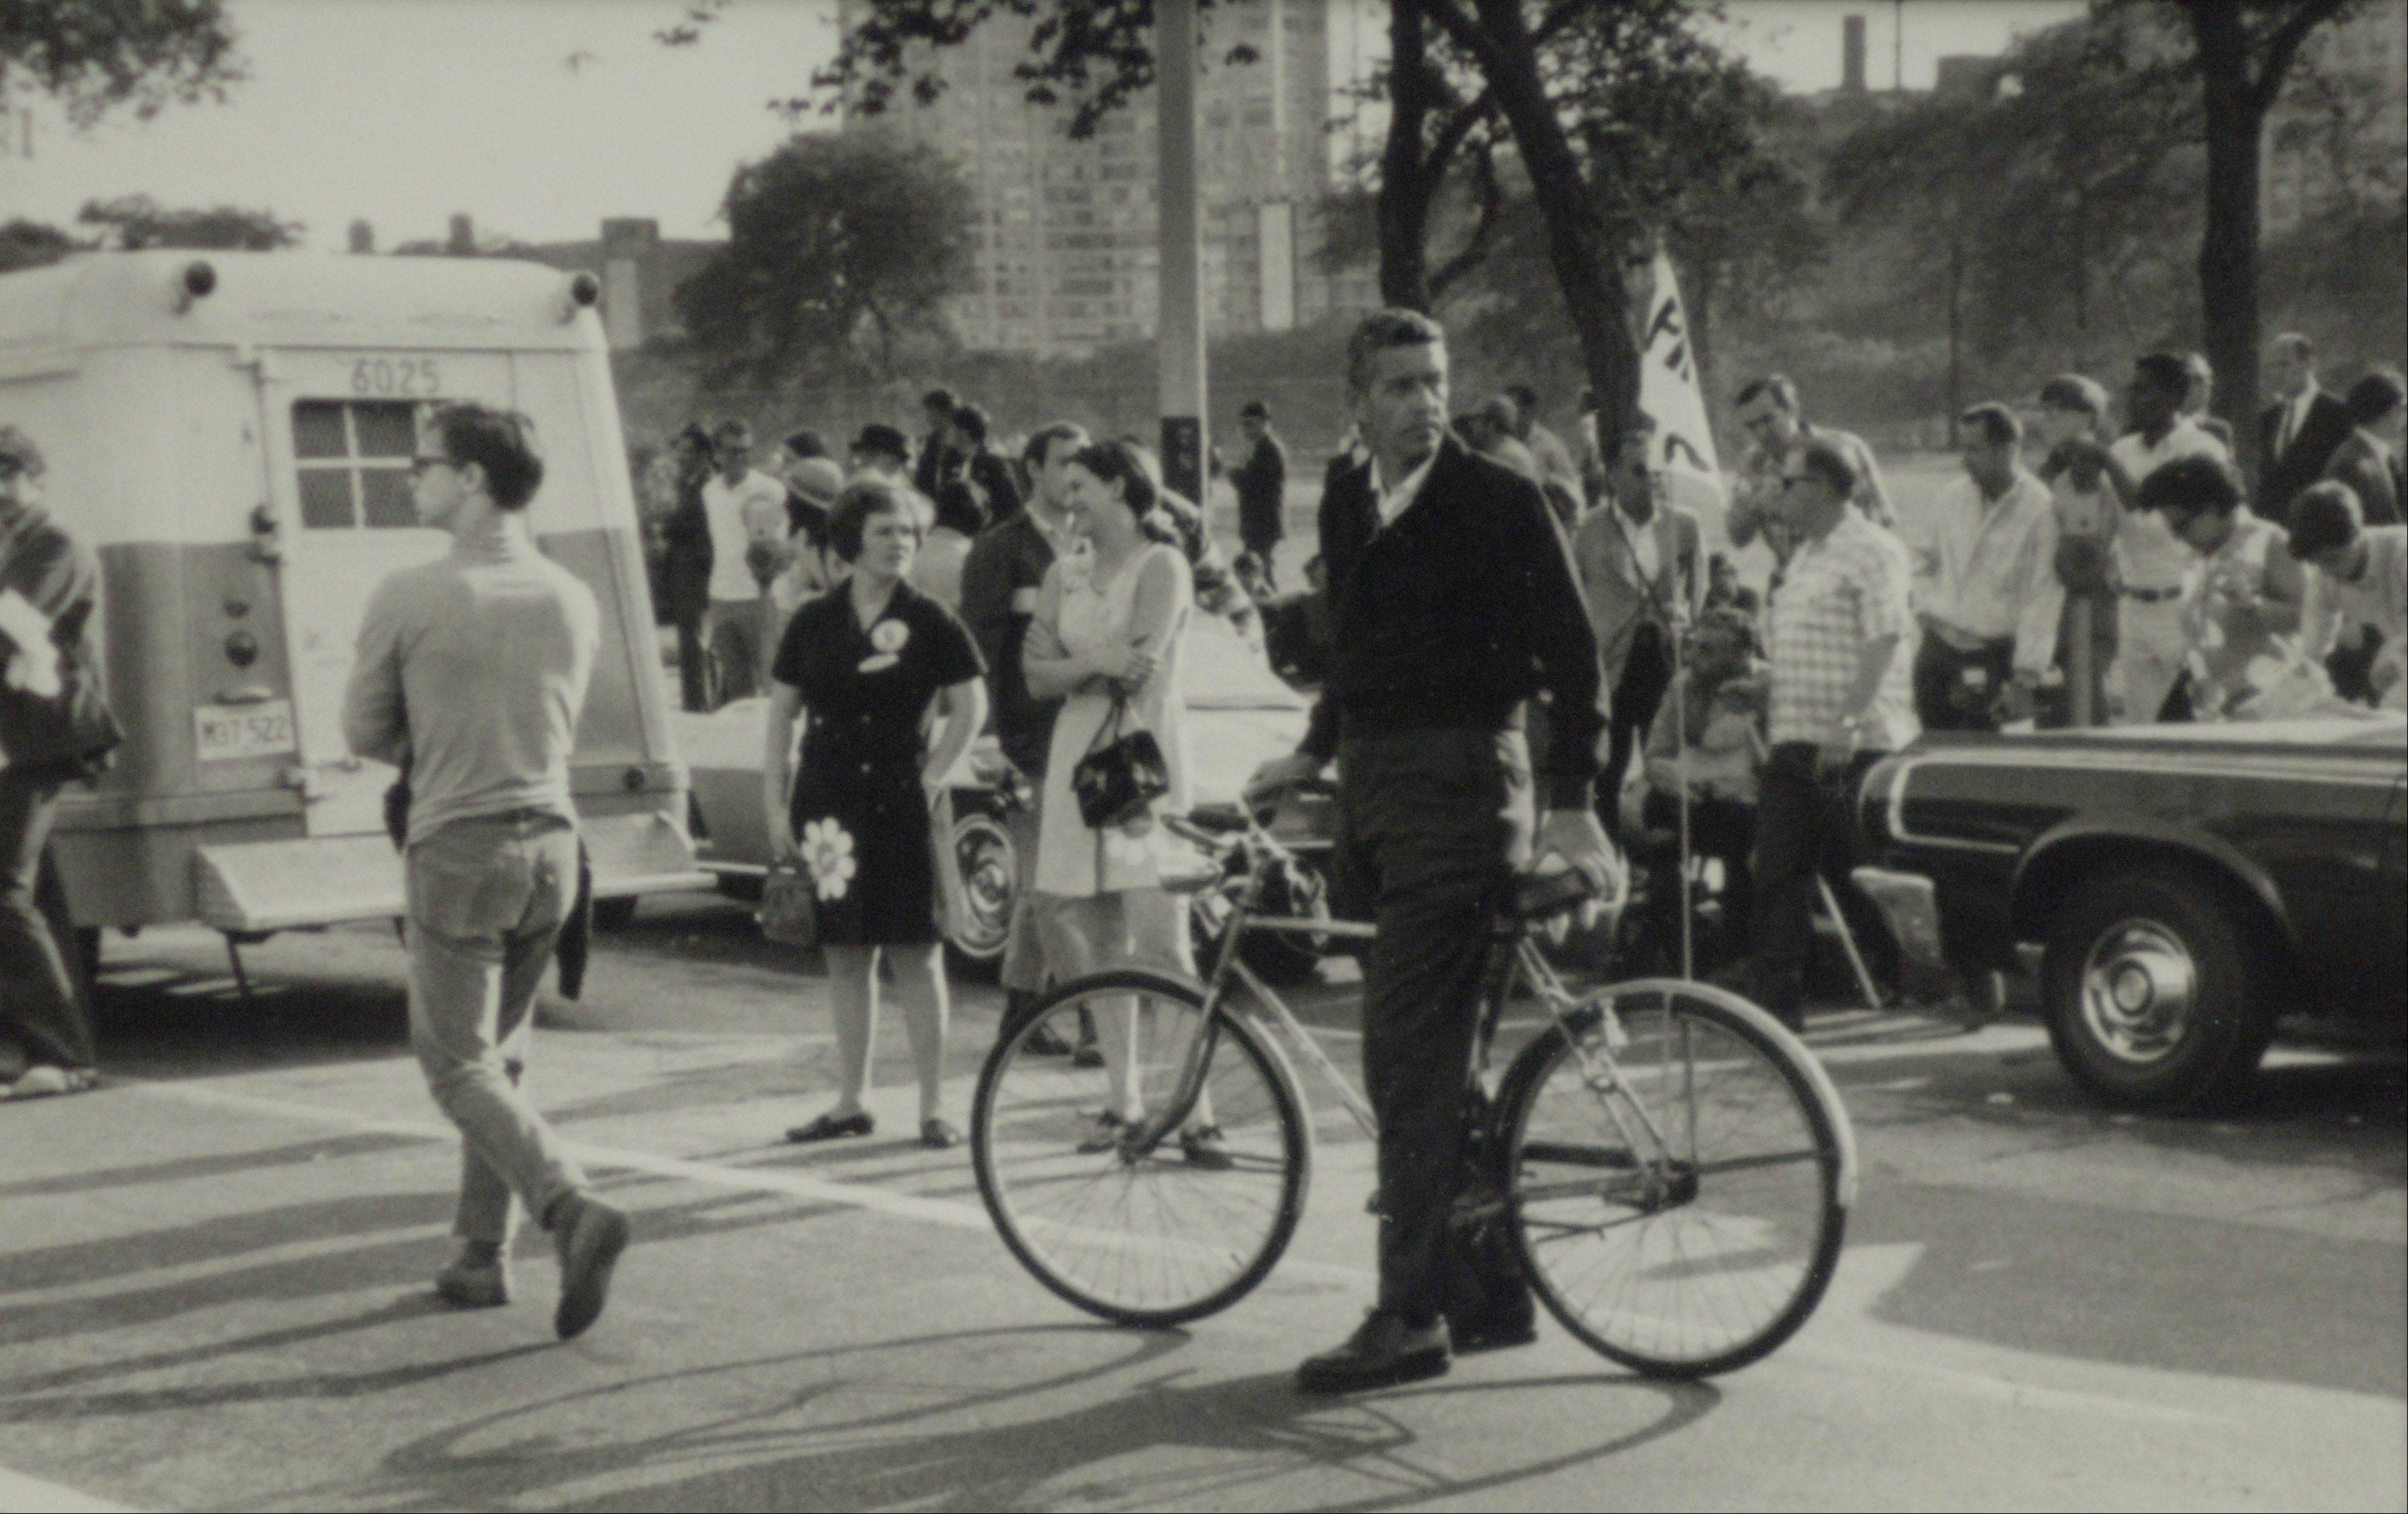 Zipping around on his bike enabled Jack Mabley to fully cover the tumultuous 1968 Democratic Convention in Chicago.